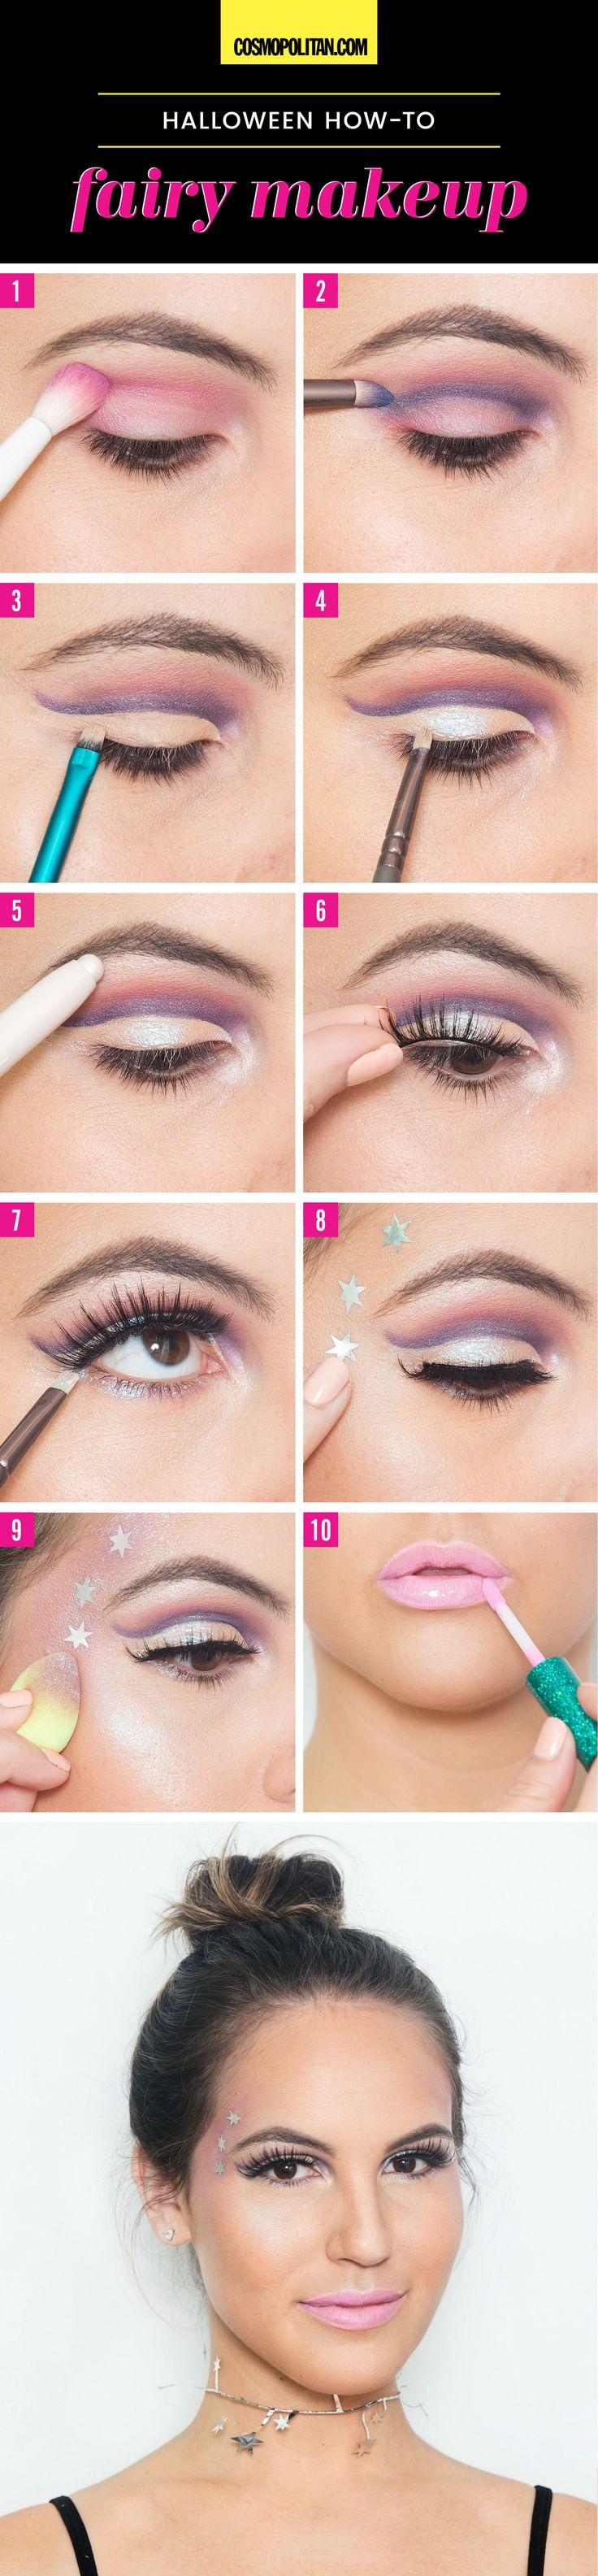 best ideas for makeup tutorials : 10 halloween looks you can create